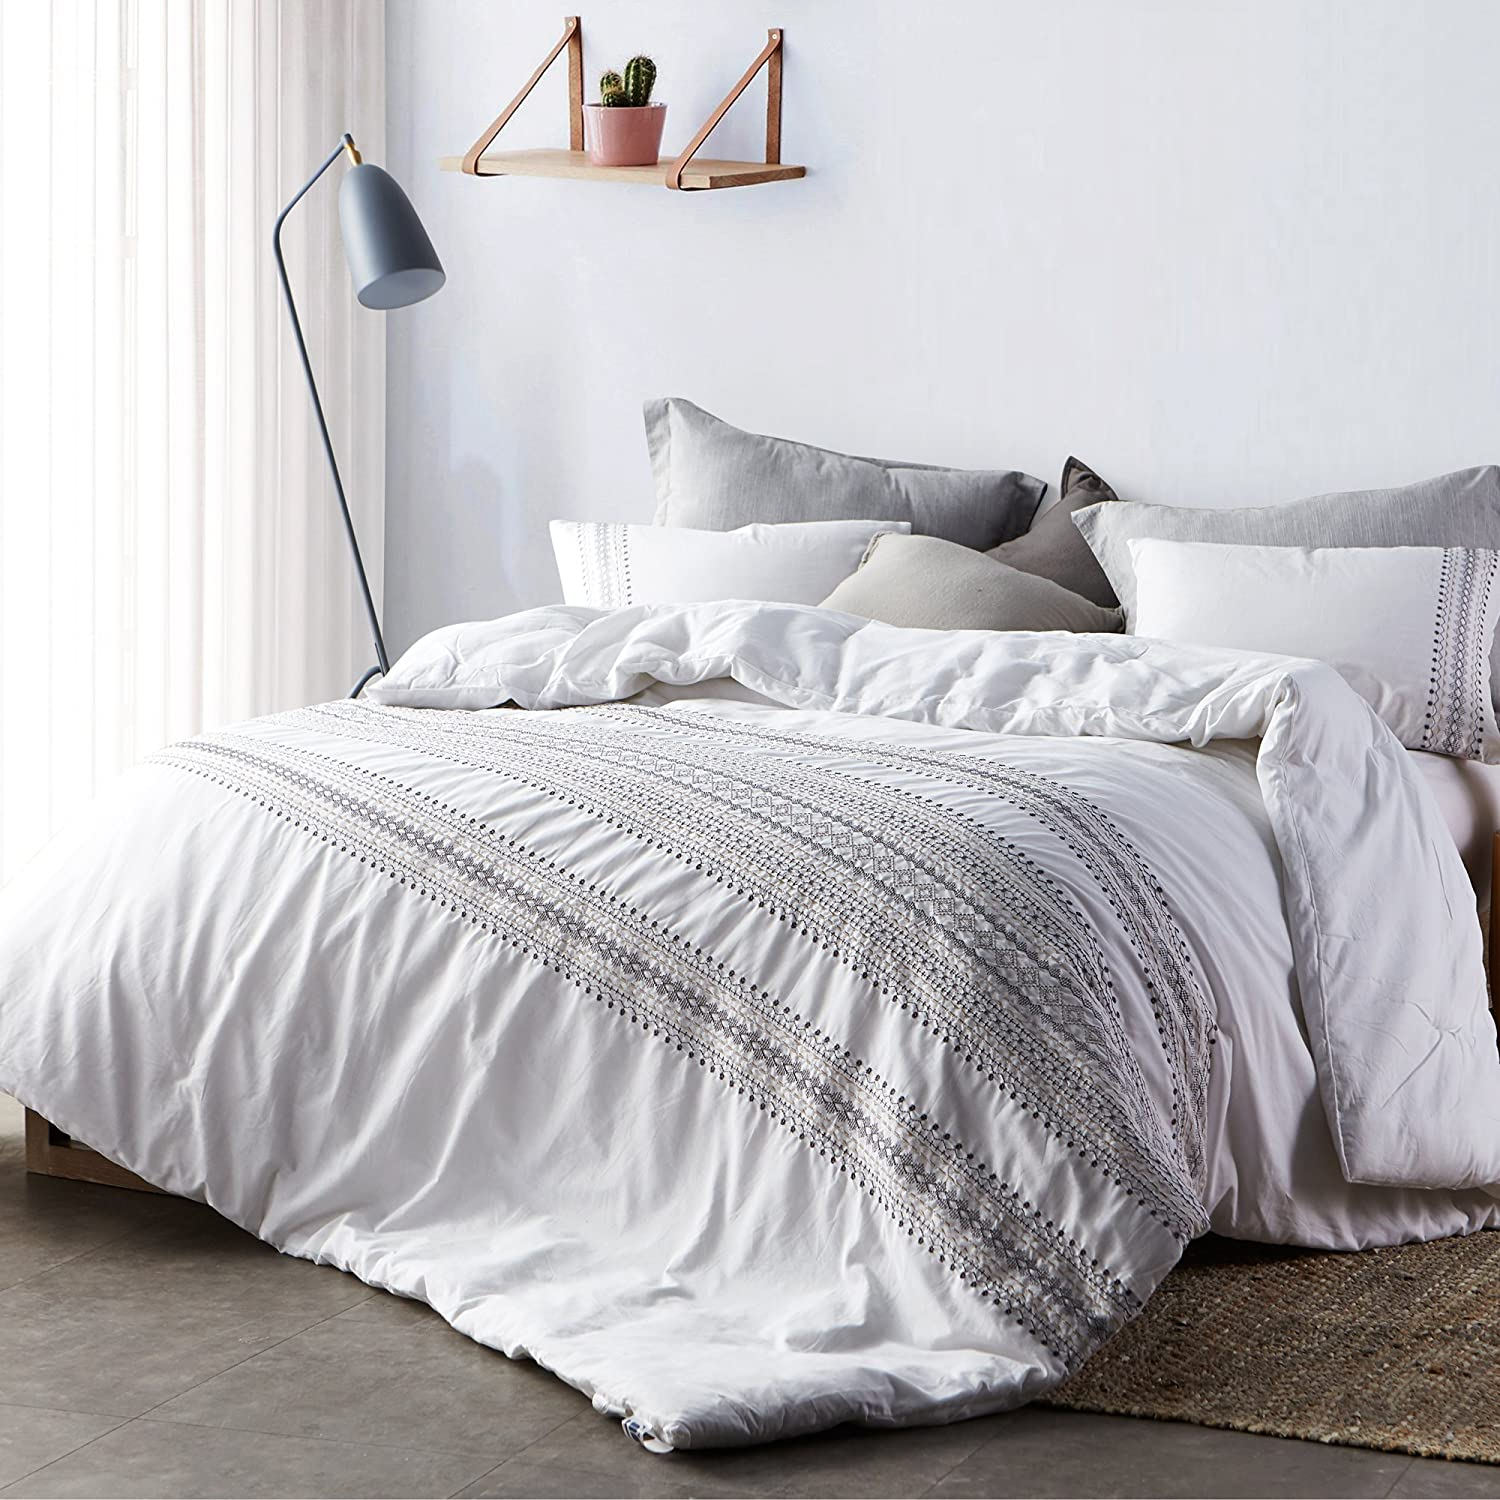 byourbed cambria stitch embroidered king comforter oversized king xl white